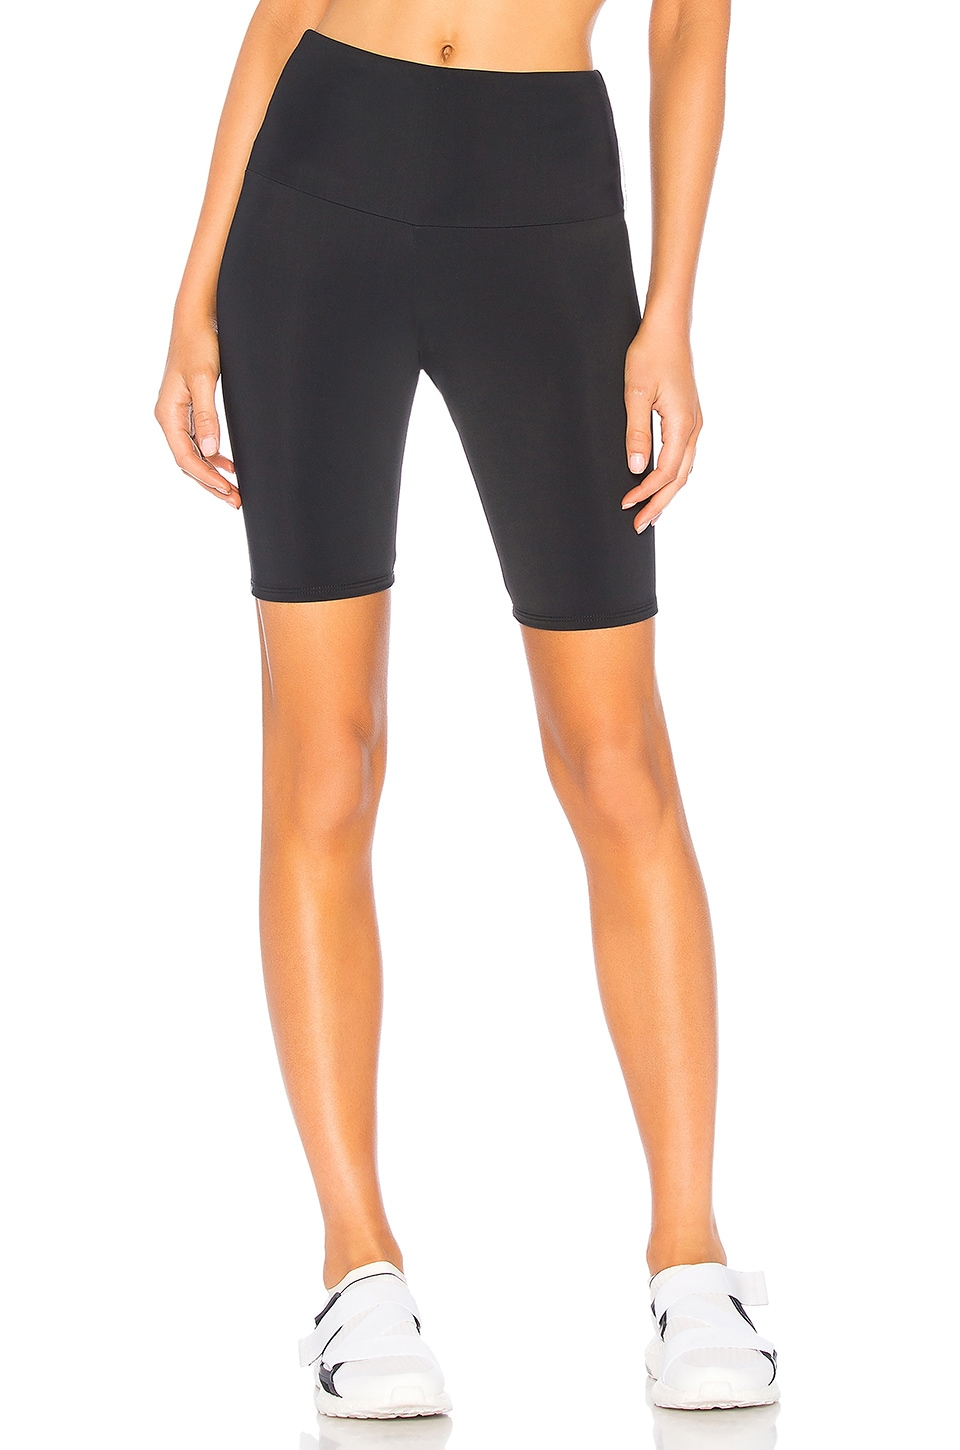 High Rise Bike Short             onzie                                                                                                       CA$ 72.96 15